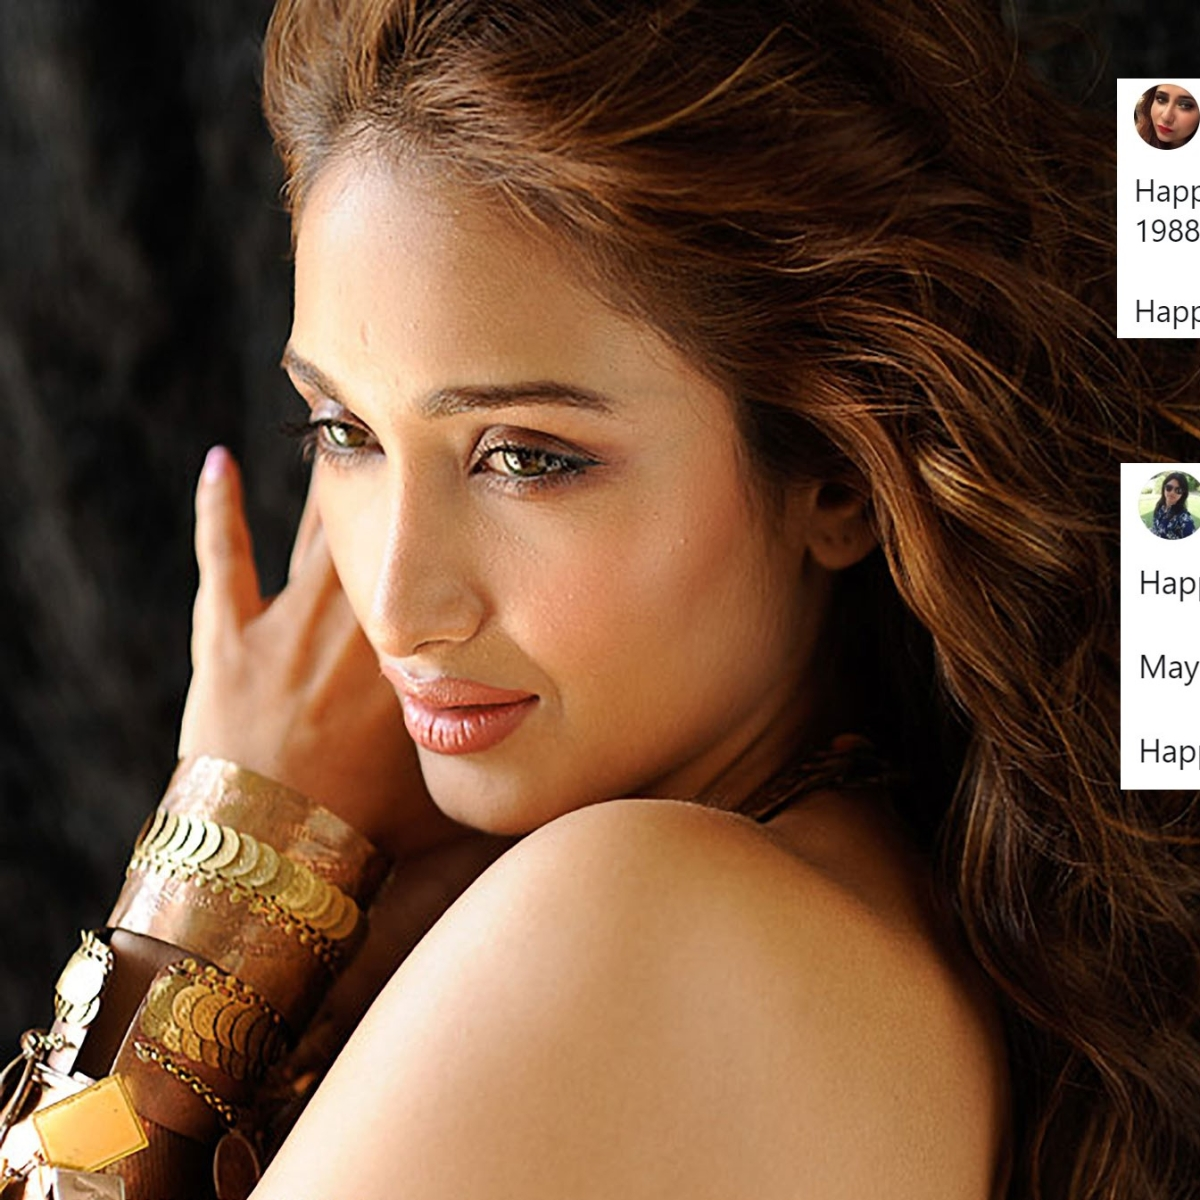 Fans pour in wishes for late actor Jiah Khan on her birth anniversary